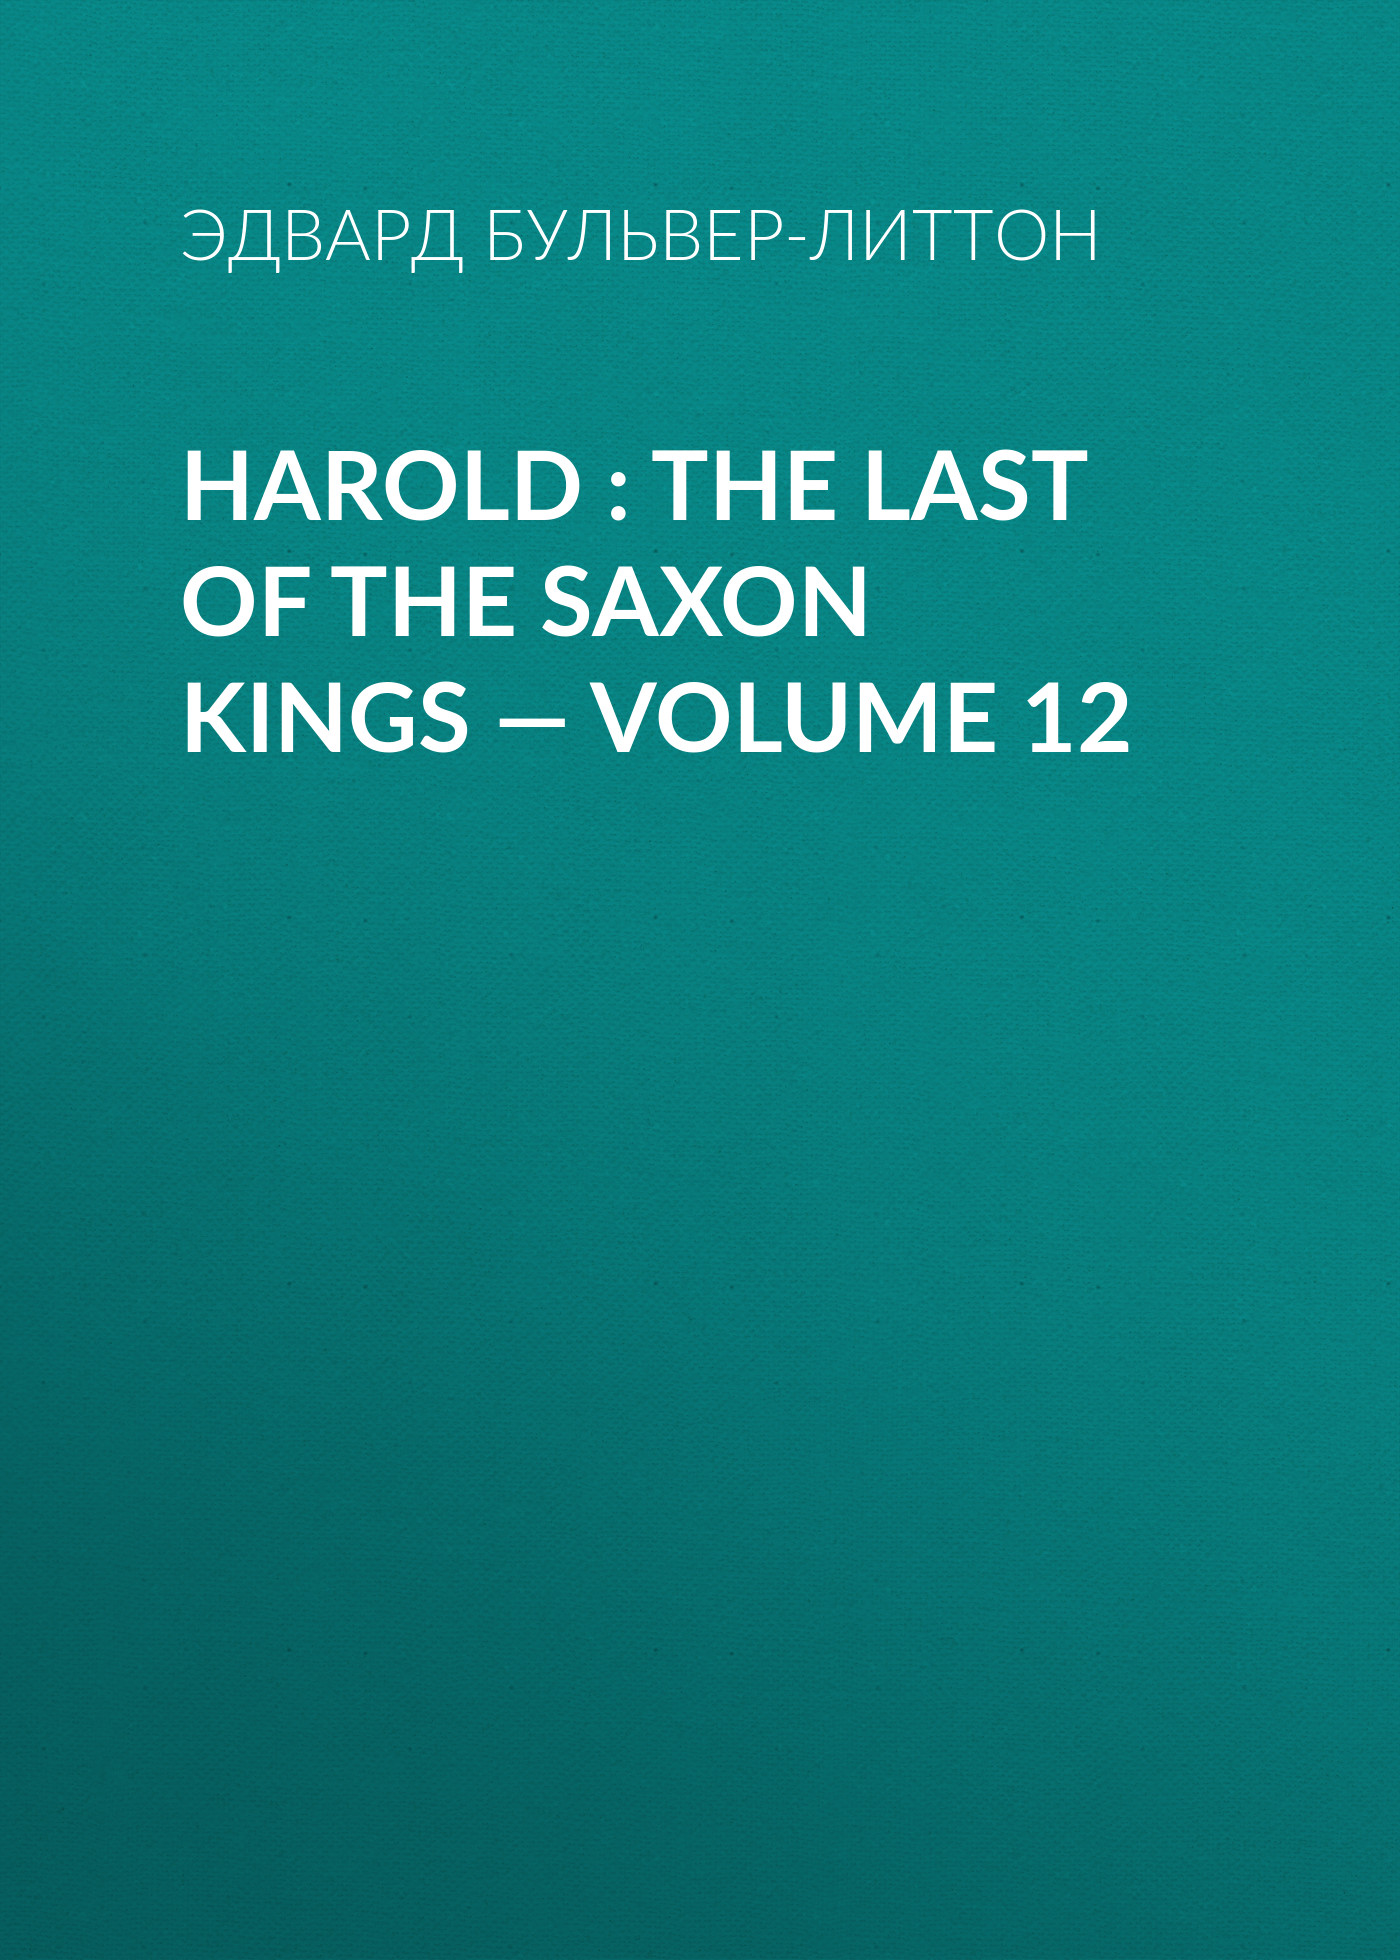 Эдвард Бульвер-Литтон Harold : the Last of the Saxon Kings — Volume 12 эдвард бульвер литтон harold the last of the saxon kings volume 10